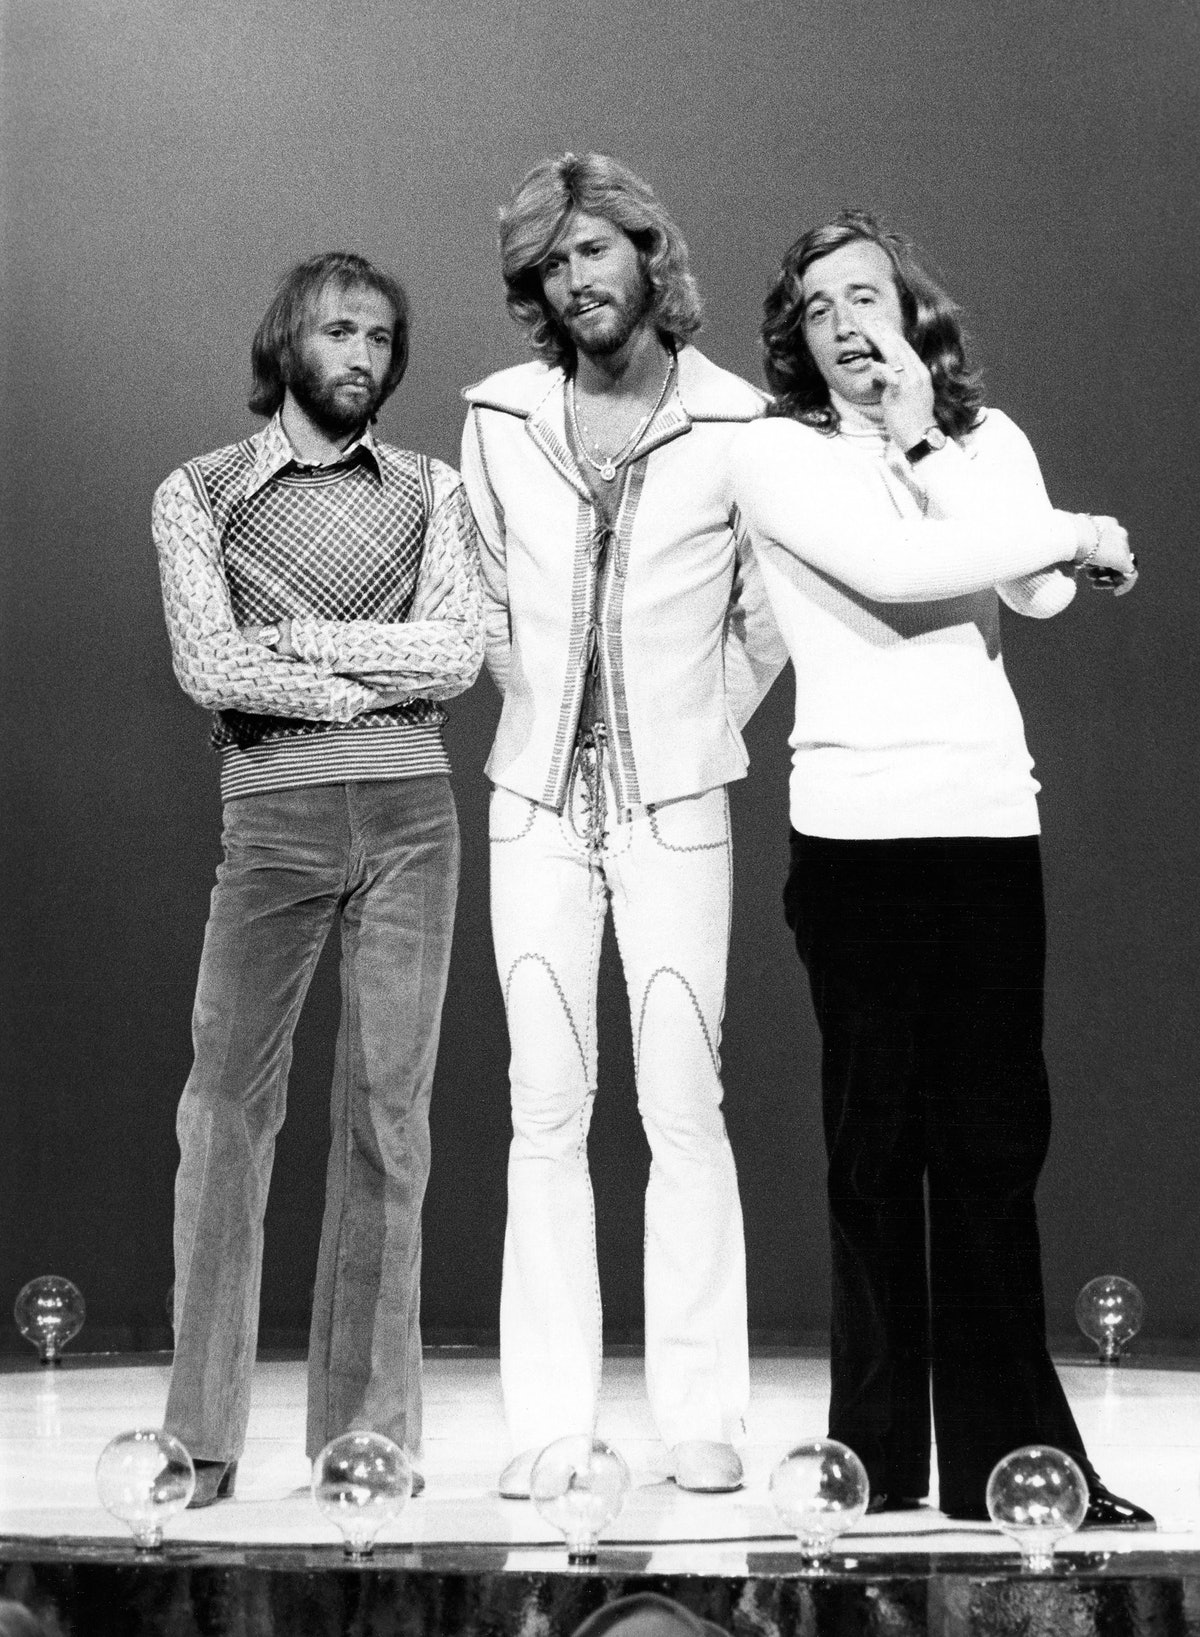 The Bee Gees, 1973.